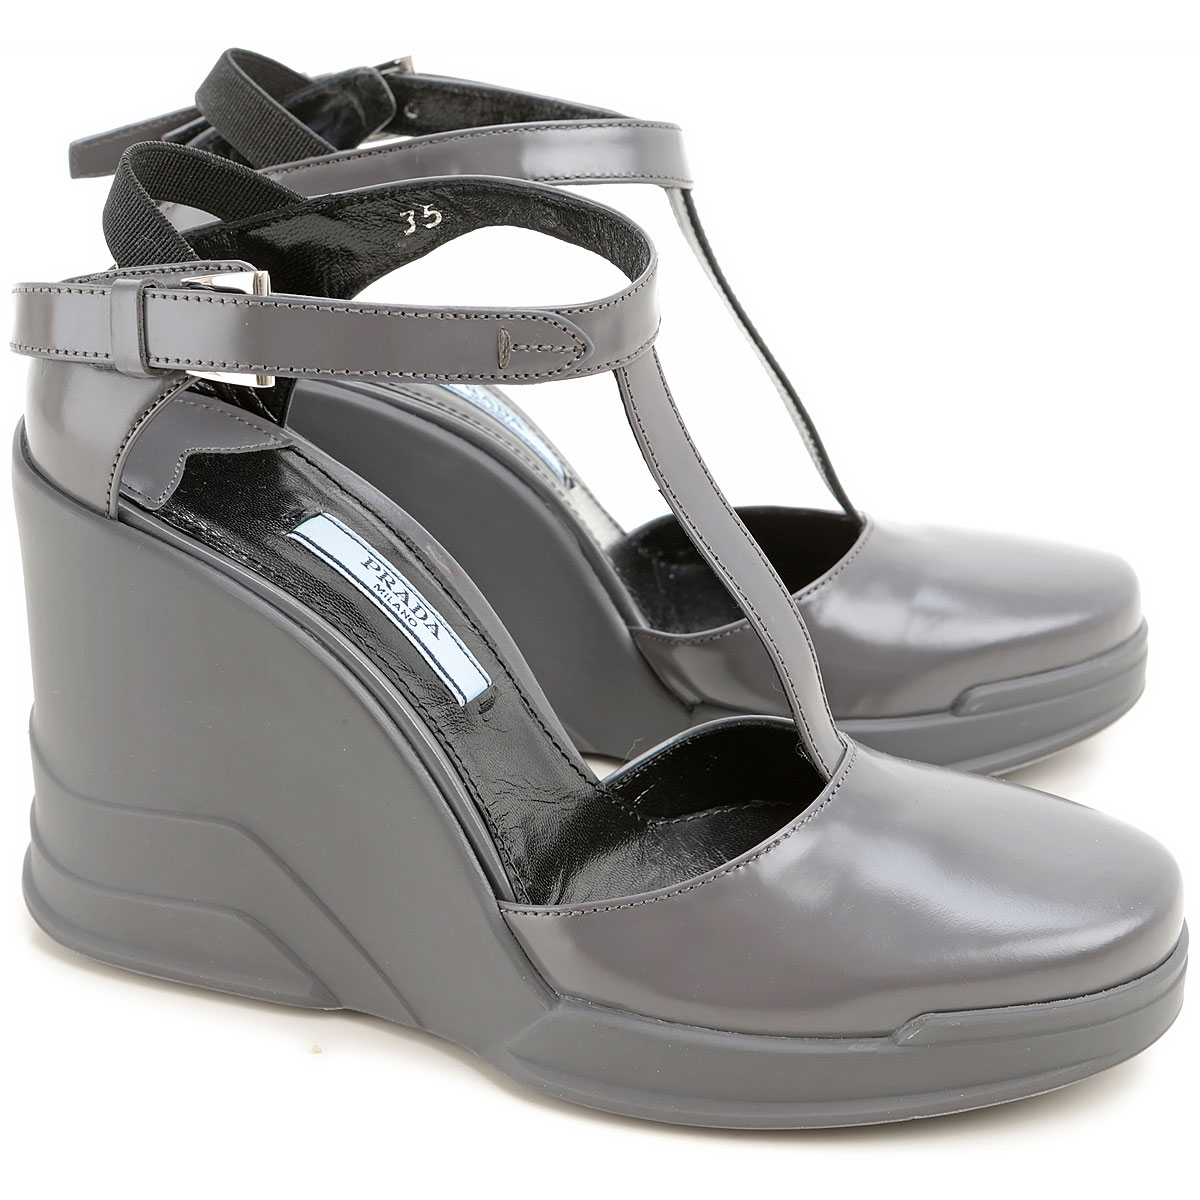 Prada Wedges for Women in Outlet Grey USA - GOOFASH